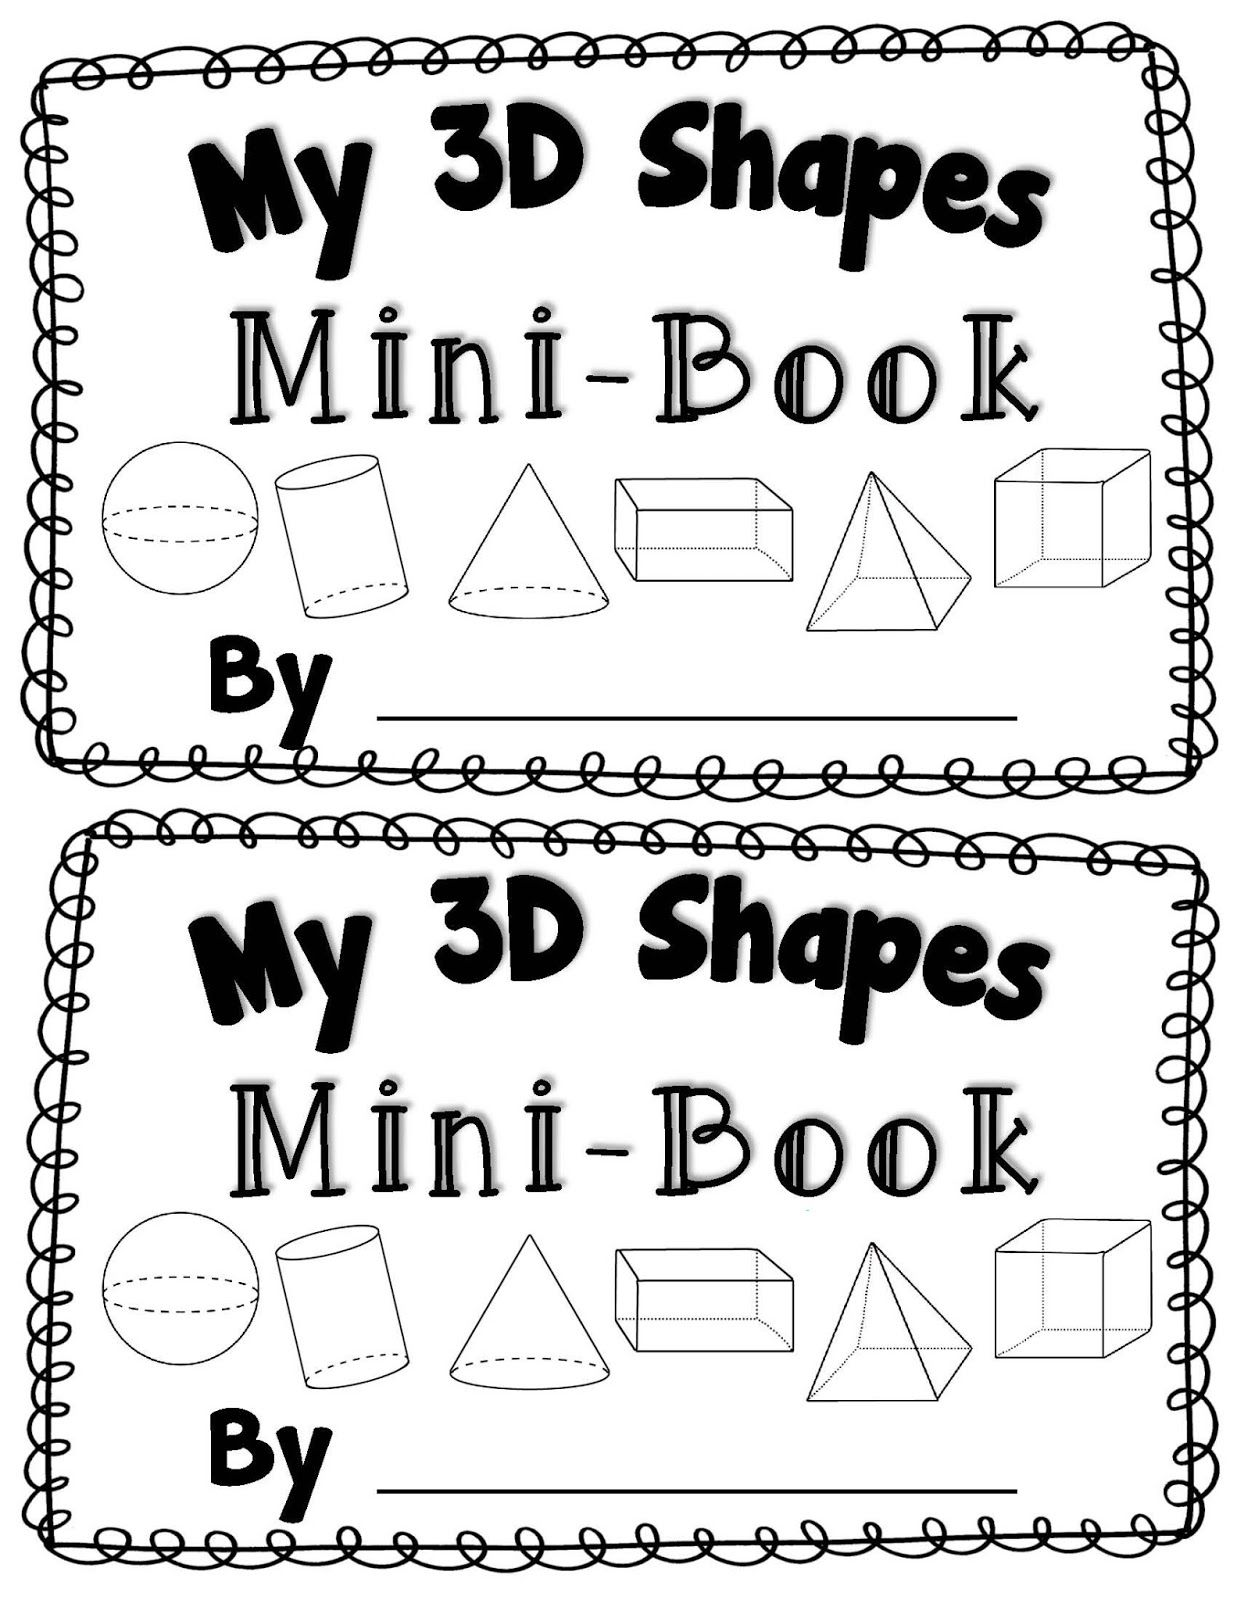 3d Shapes Books The Kindergarten Blog Looks Like It Would Be Worth Exploring Some More